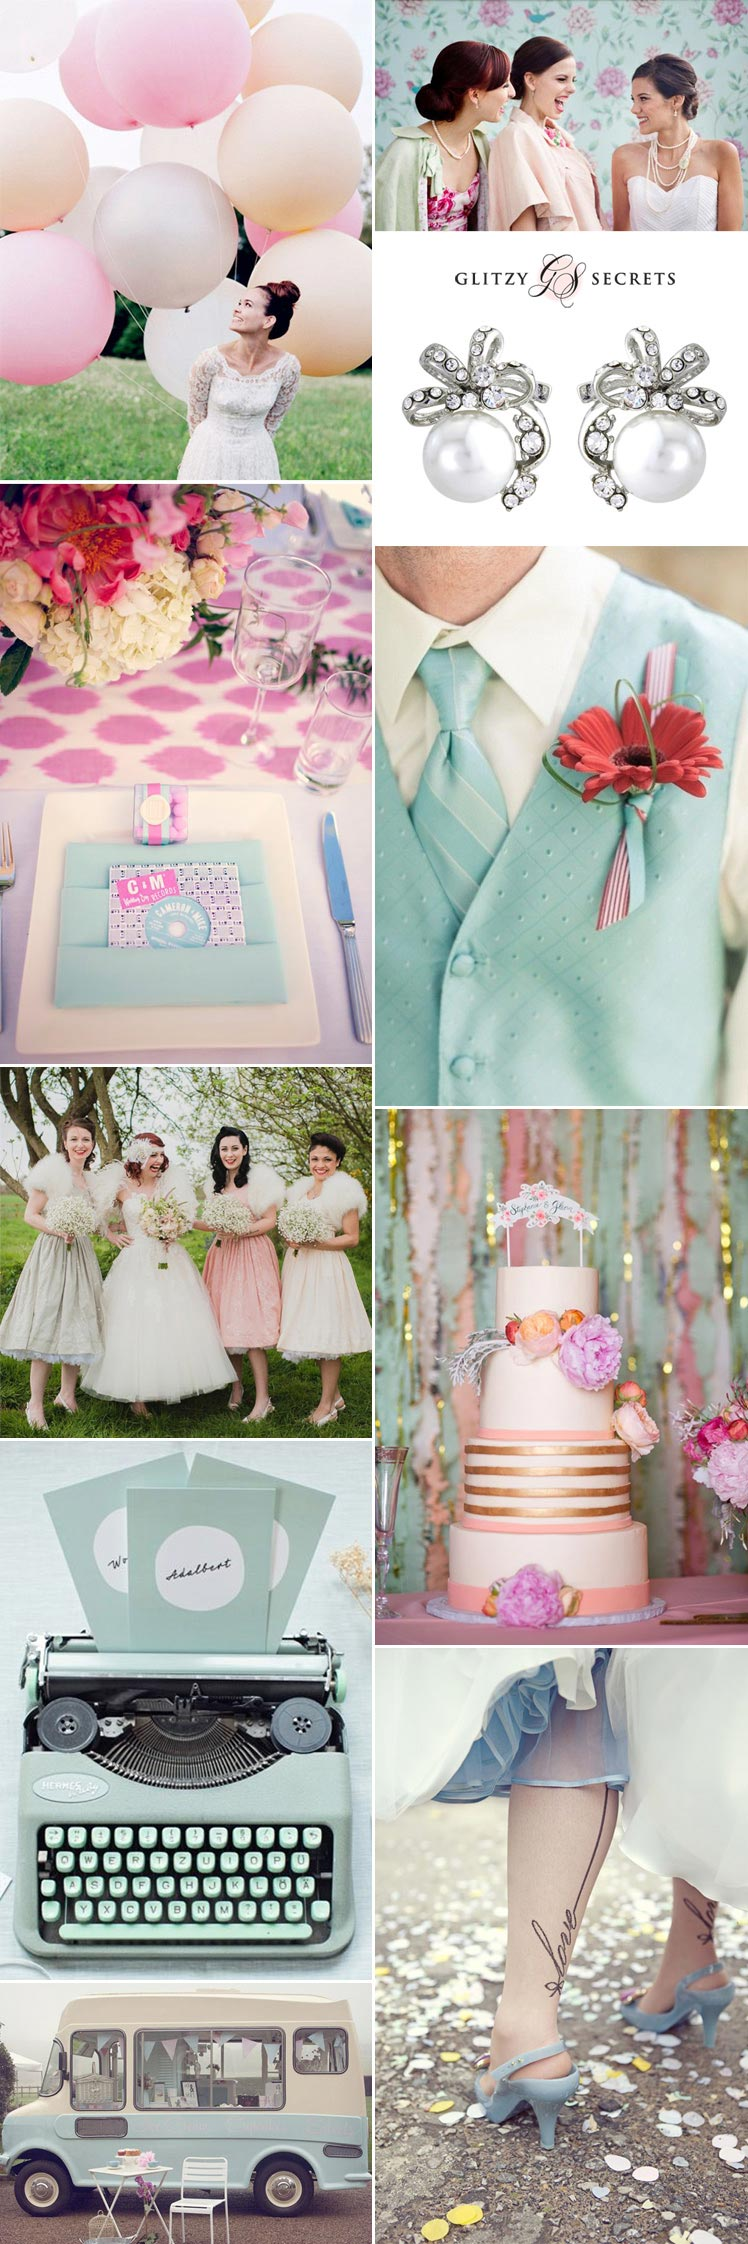 explore the retro 1950s for a fun wedding theme